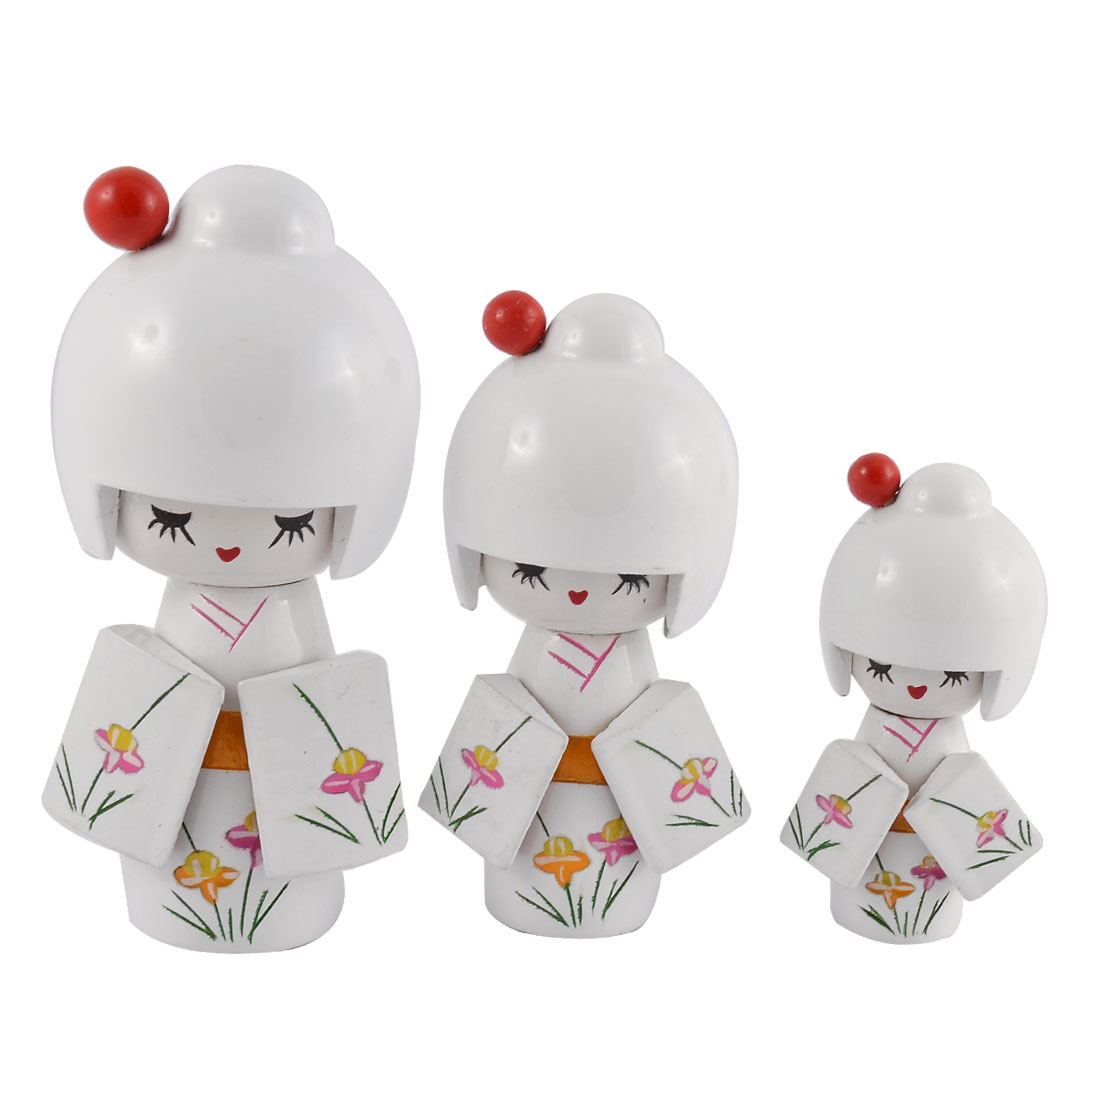 Home Wooden Japanese Doll Girl Desk Desktop Decoration White 3 in 1